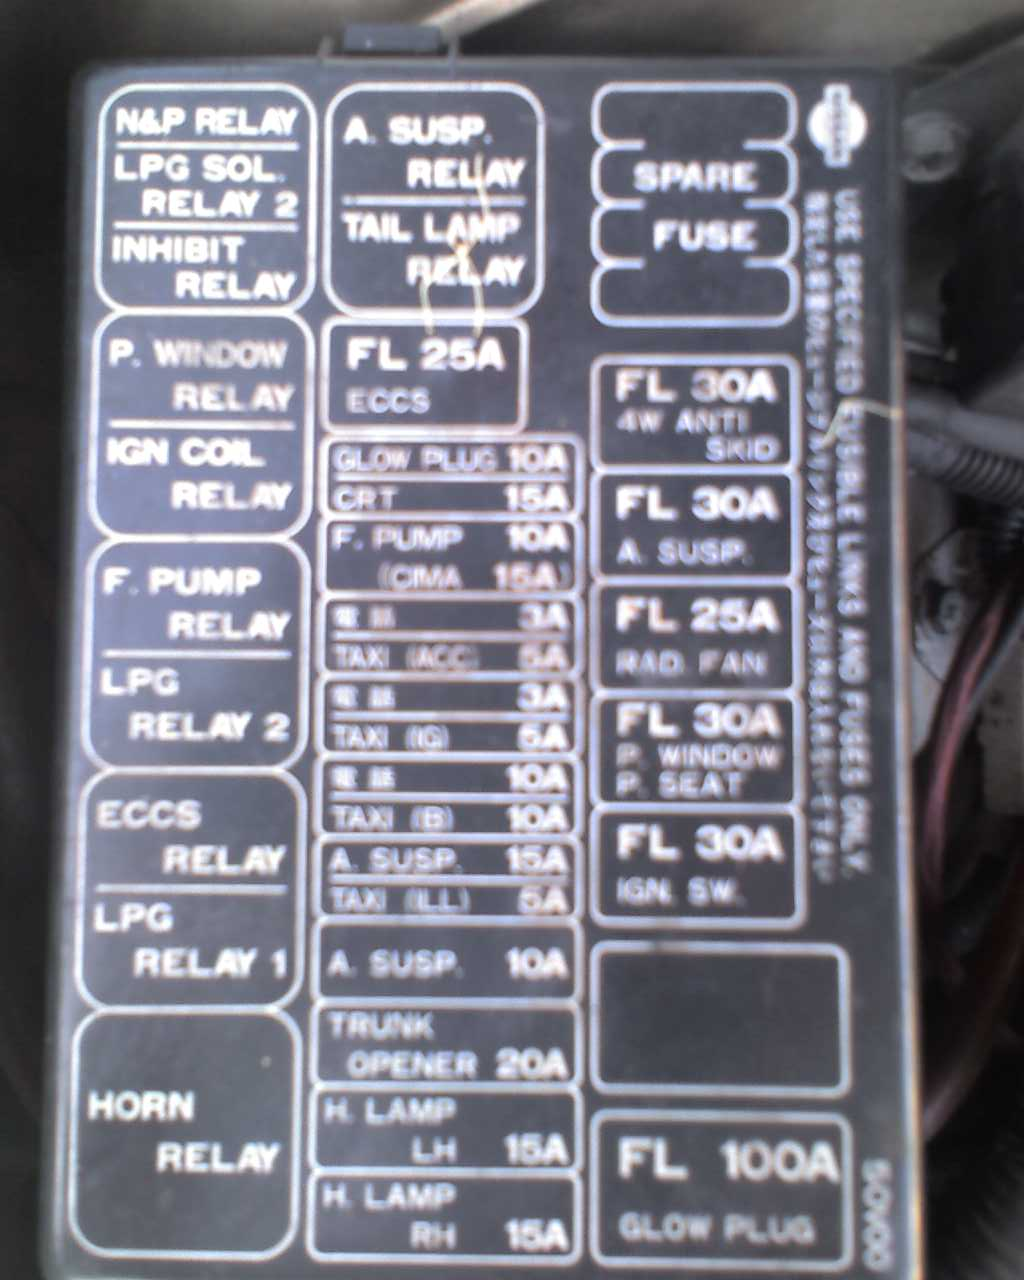 post 18399 1216301241 y31 cima four door family sau community 300zx twin turbo fuse box diagram at crackthecode.co